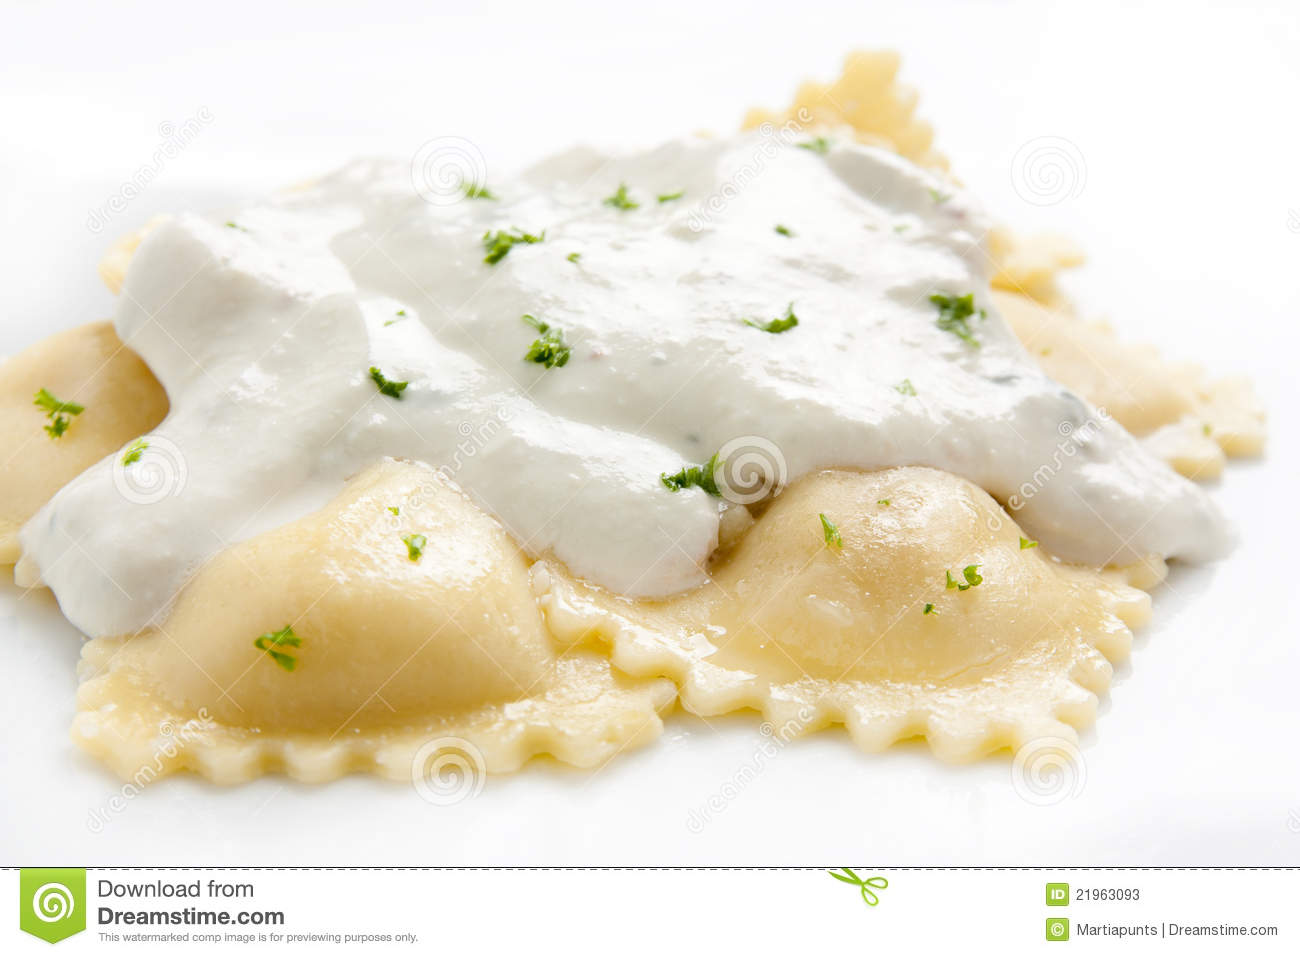 Reviews On Best Ravioli In San Diego Ca United States Had A Truffle Ish White Sauce That Was Amazing Ravioli Was A Good The Spinach And Cheese Ravioli